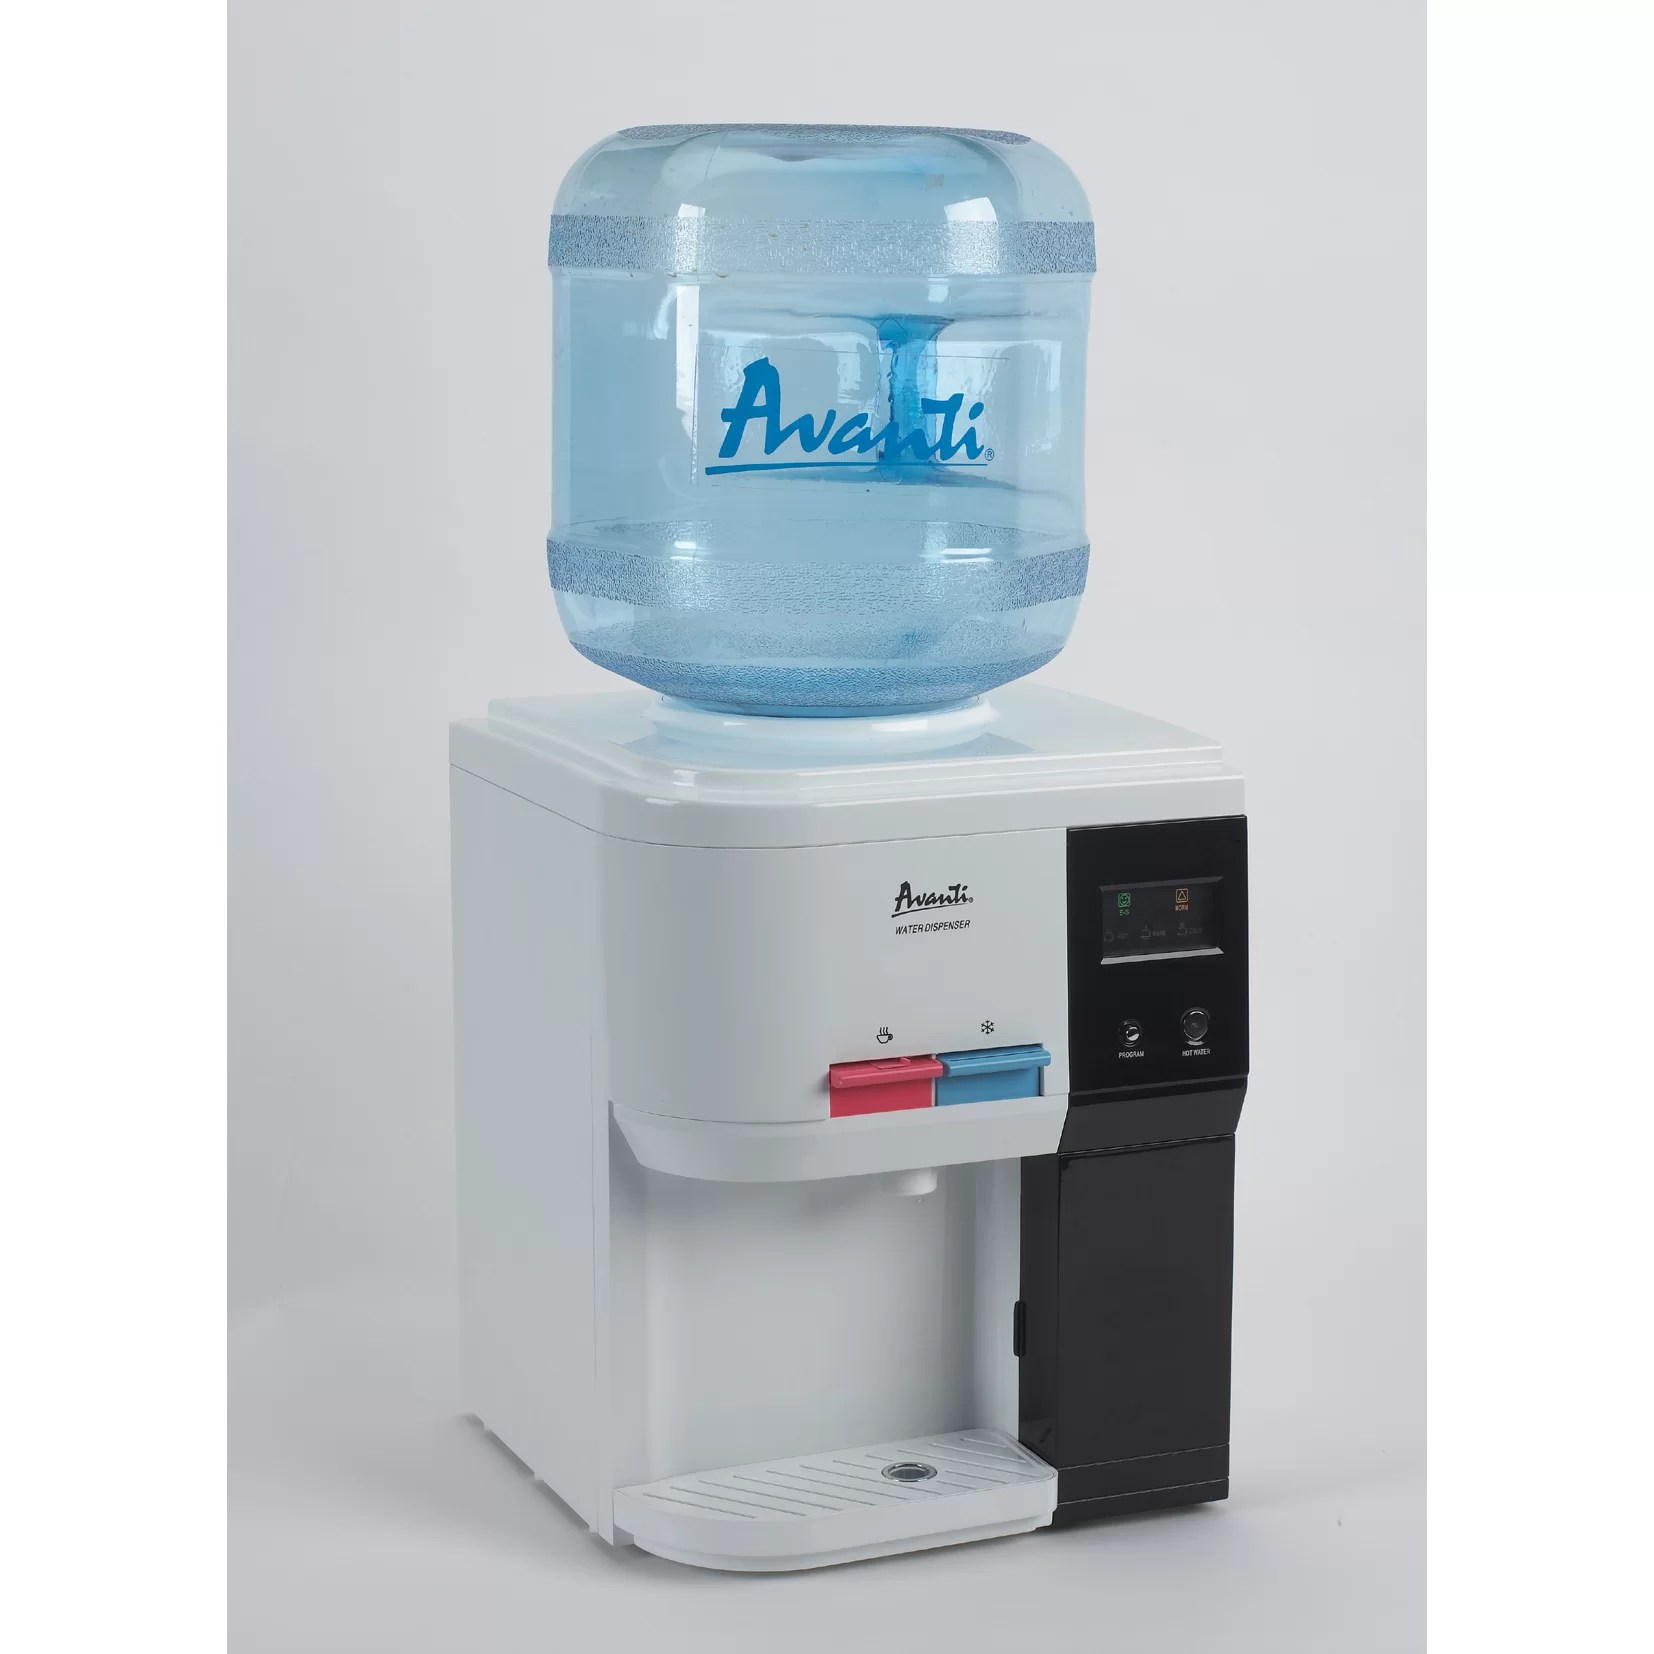 Countertop Drinking Fountain Avanti Countertop Hot And Cold Water Cooler And Reviews